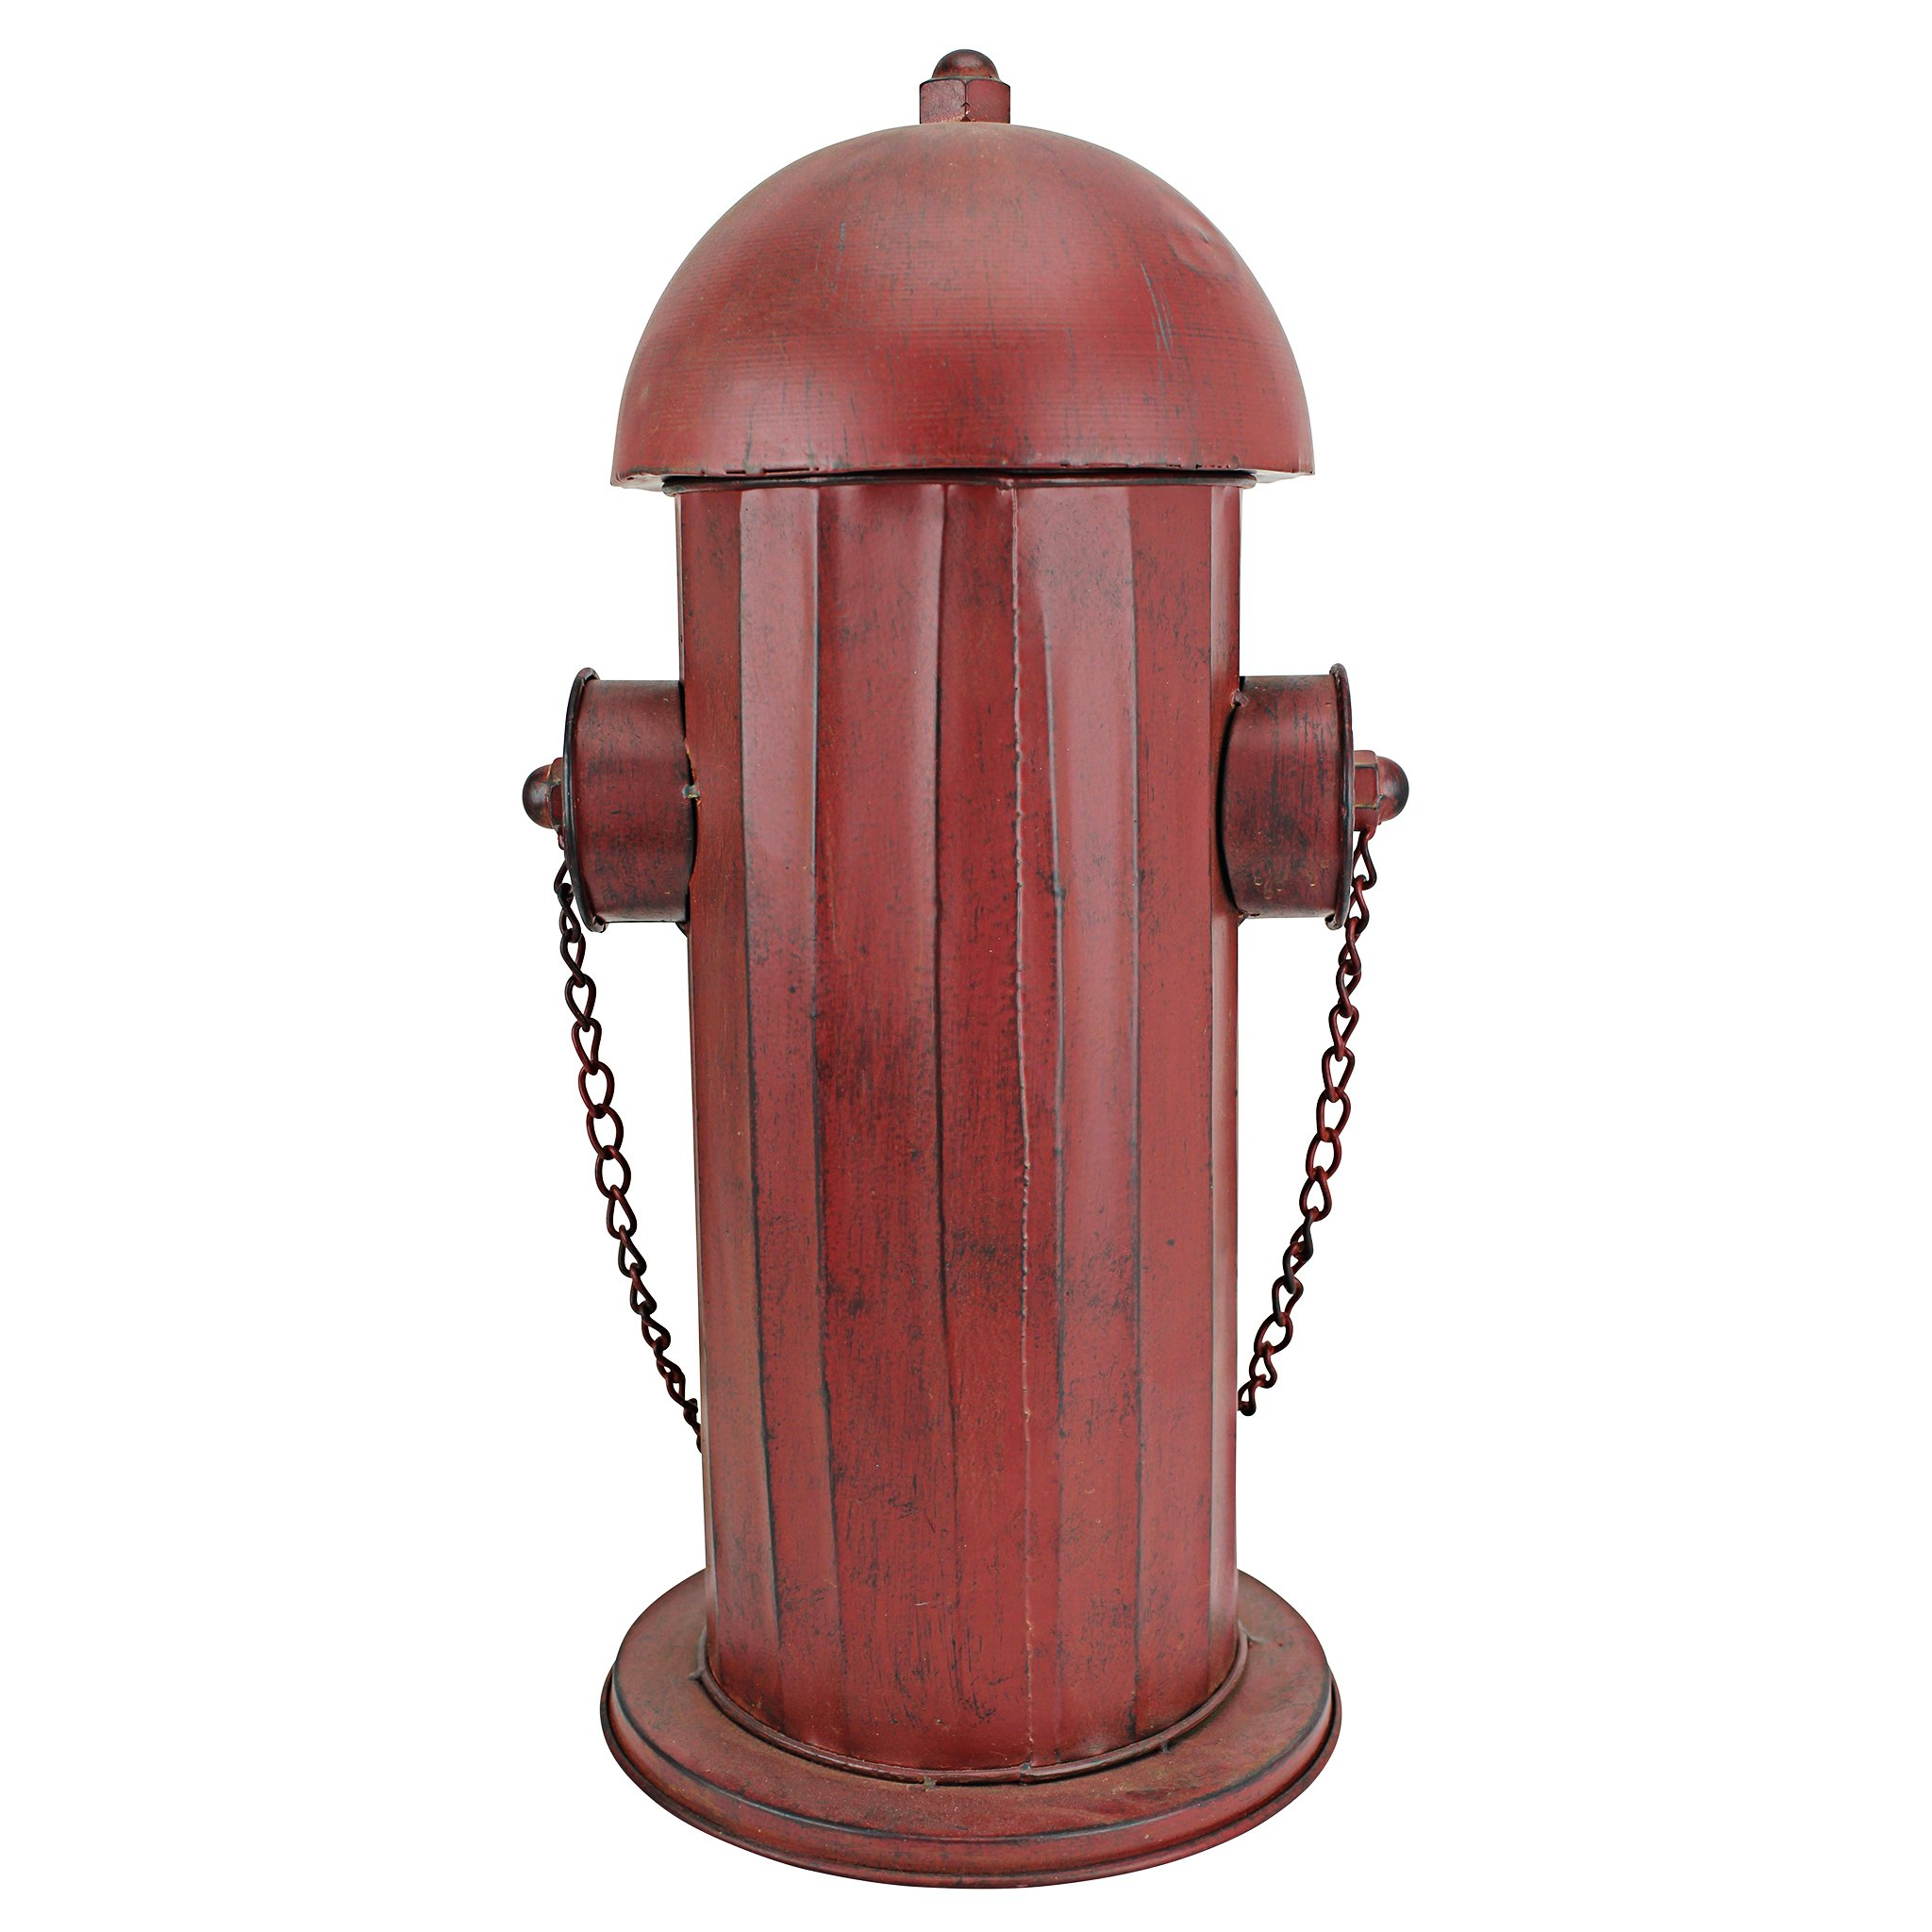 Design Toscano Fire Hydrant Statue Puppy Pee Post and Pet Storage Container, Medium 18 Inch, Metalware, Full Color by Design Toscano (Image #4)